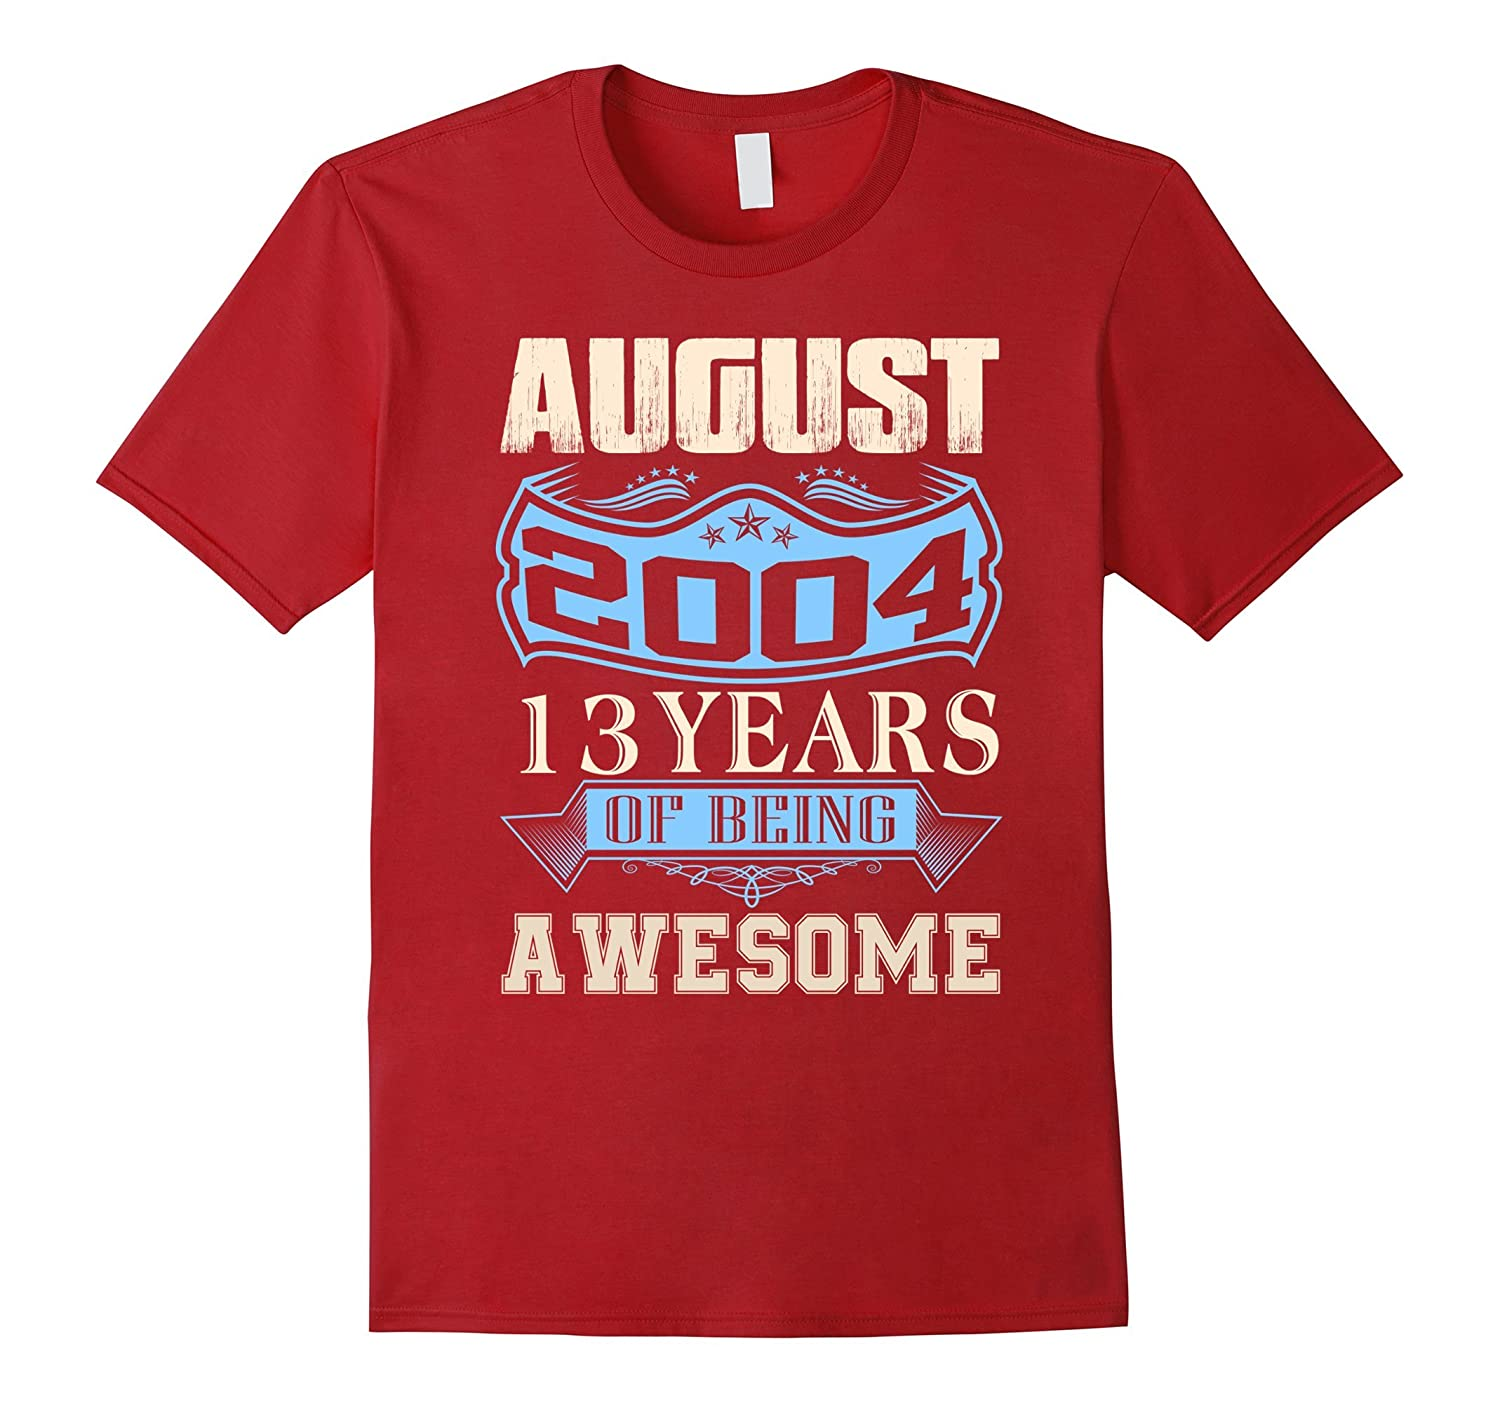 13 years of being awesome – Born in August 2004 Tshirt